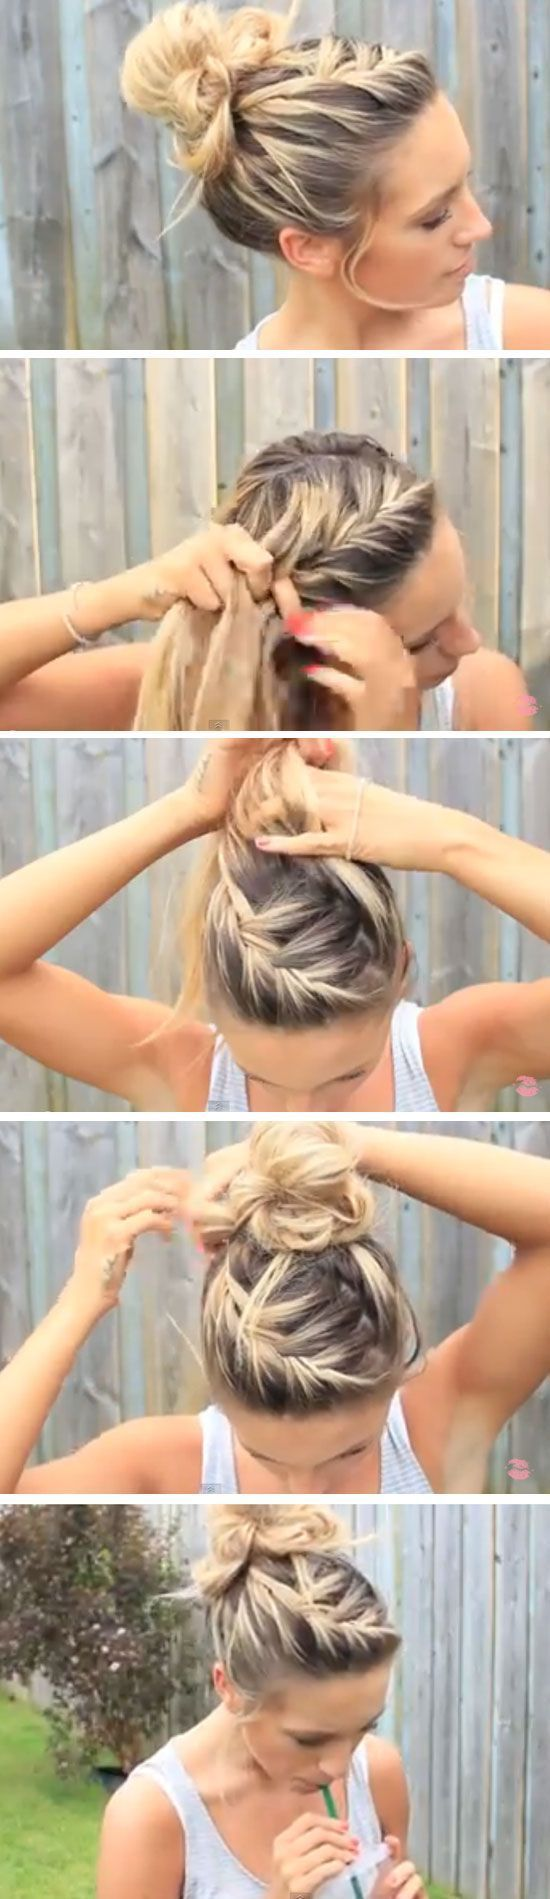 18 Cute Hairstyles that Can Be Done in a Few Minutes | Easy ...